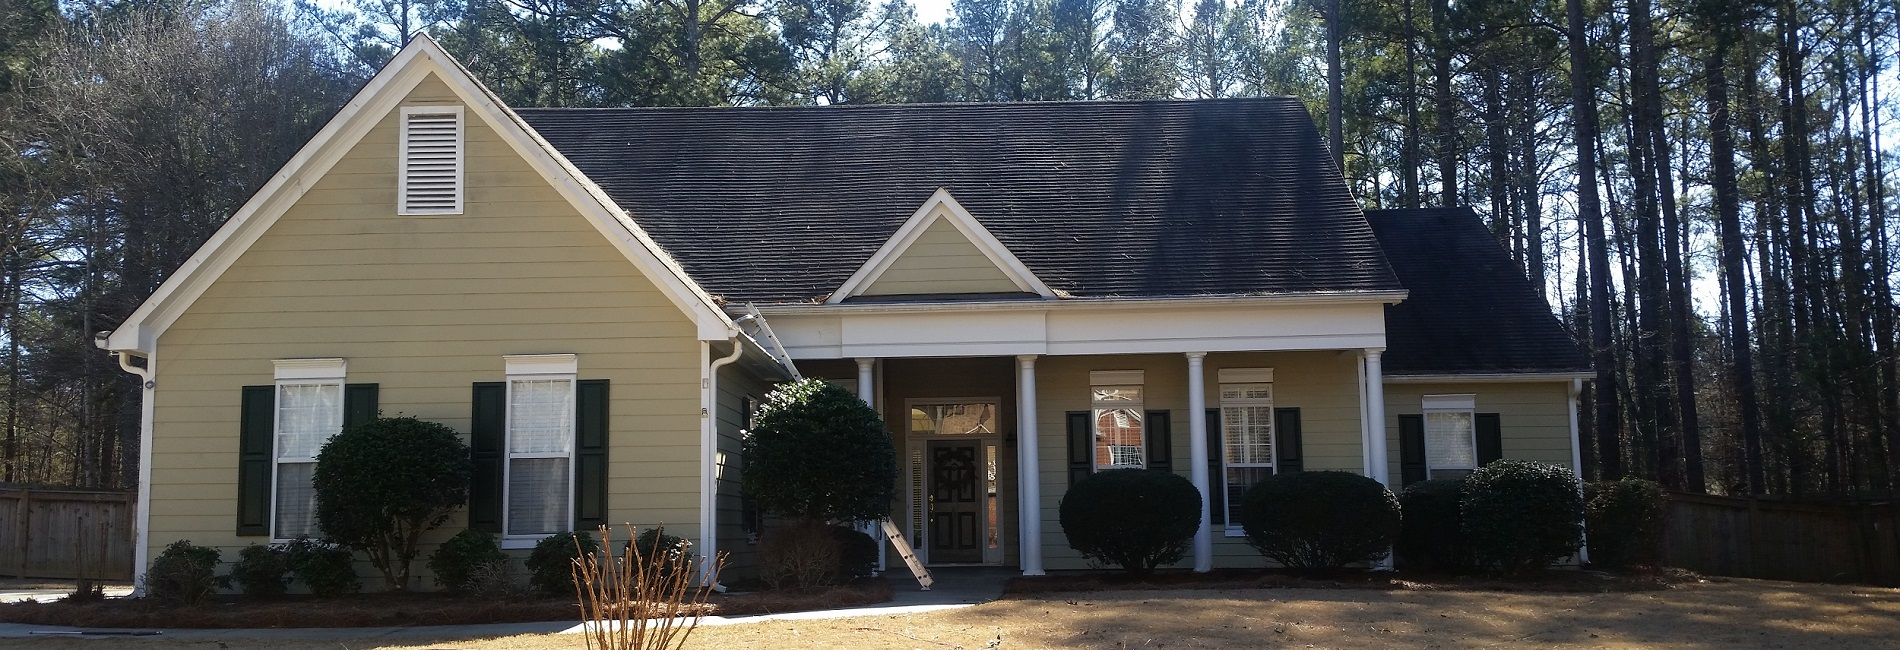 Peachtree City roof in need of roof washing to remove black stains